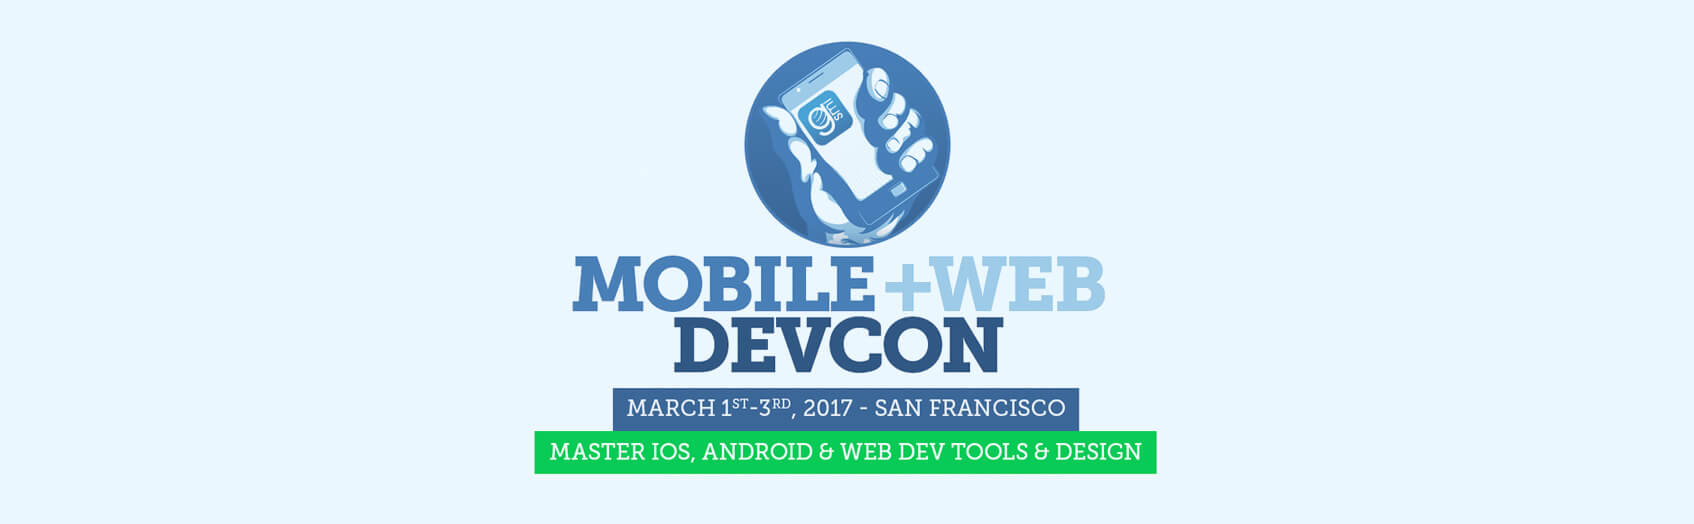 Mobile+Web DevCon in Top tech events 2017, Q1 - guide by Redwerk